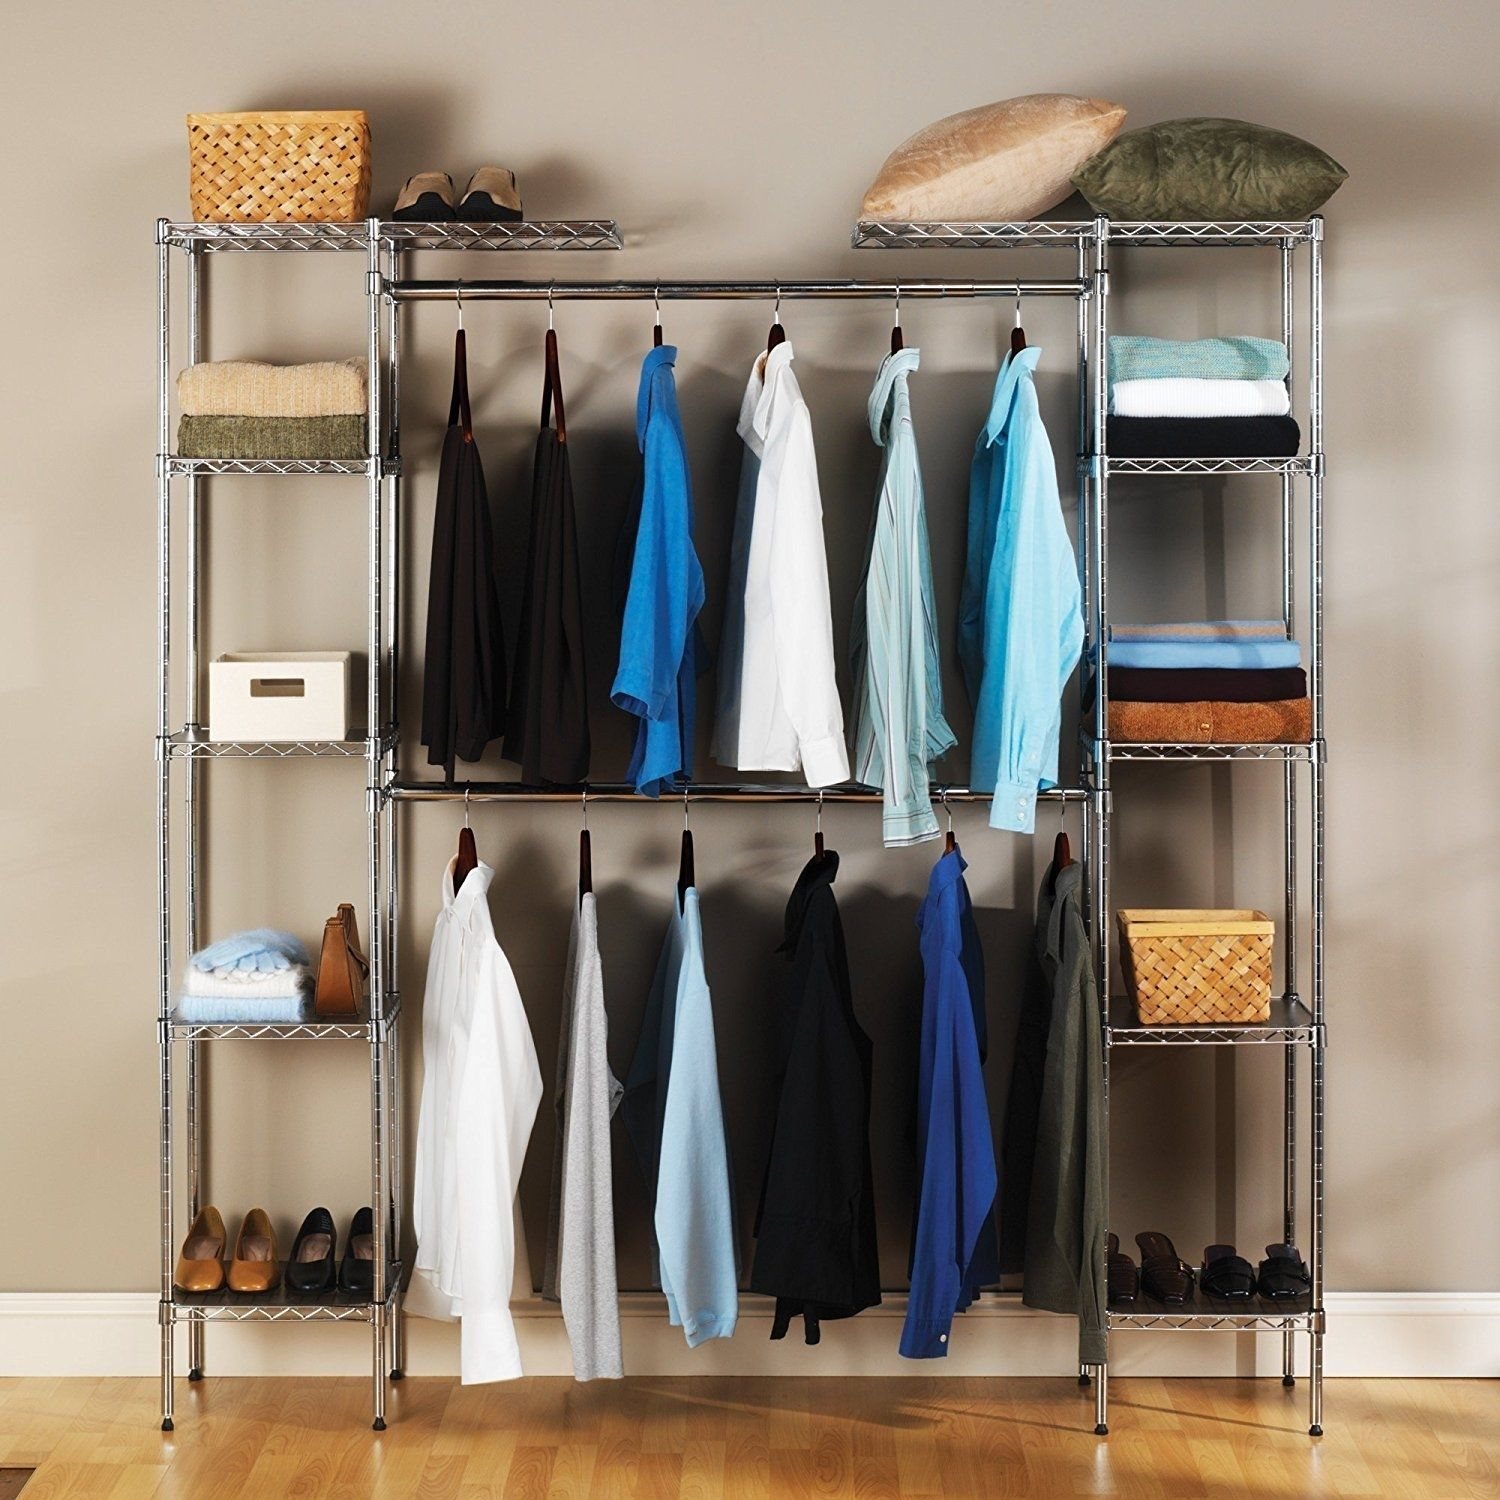 1d79f5dd81f5e Details about Custom Closet Organizer Shelves System Kit Expandable Clothes  Storage Metal Rack